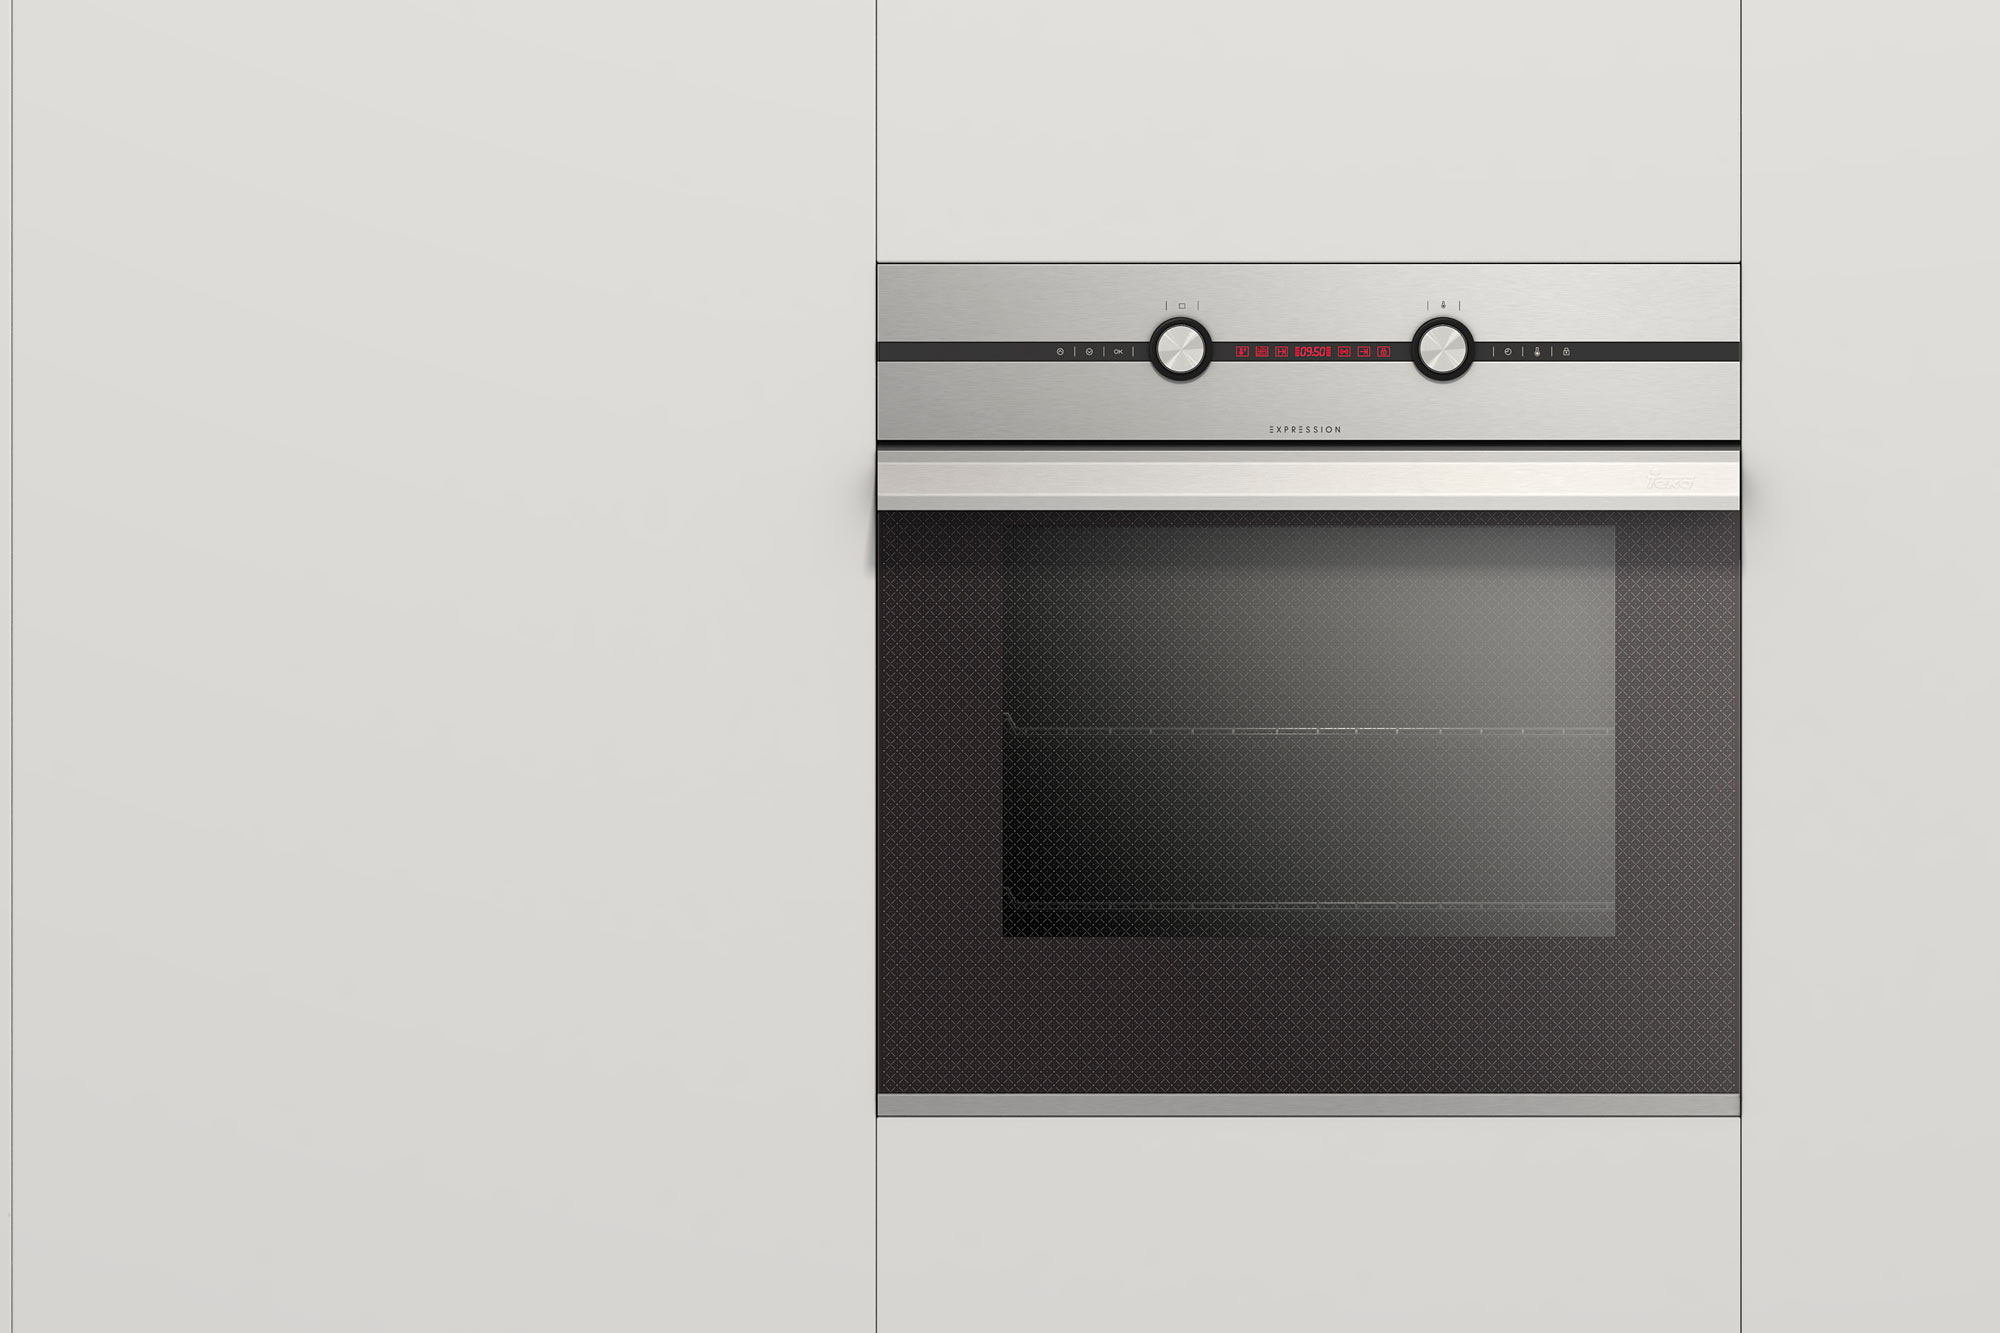 Domestic Built in Oven